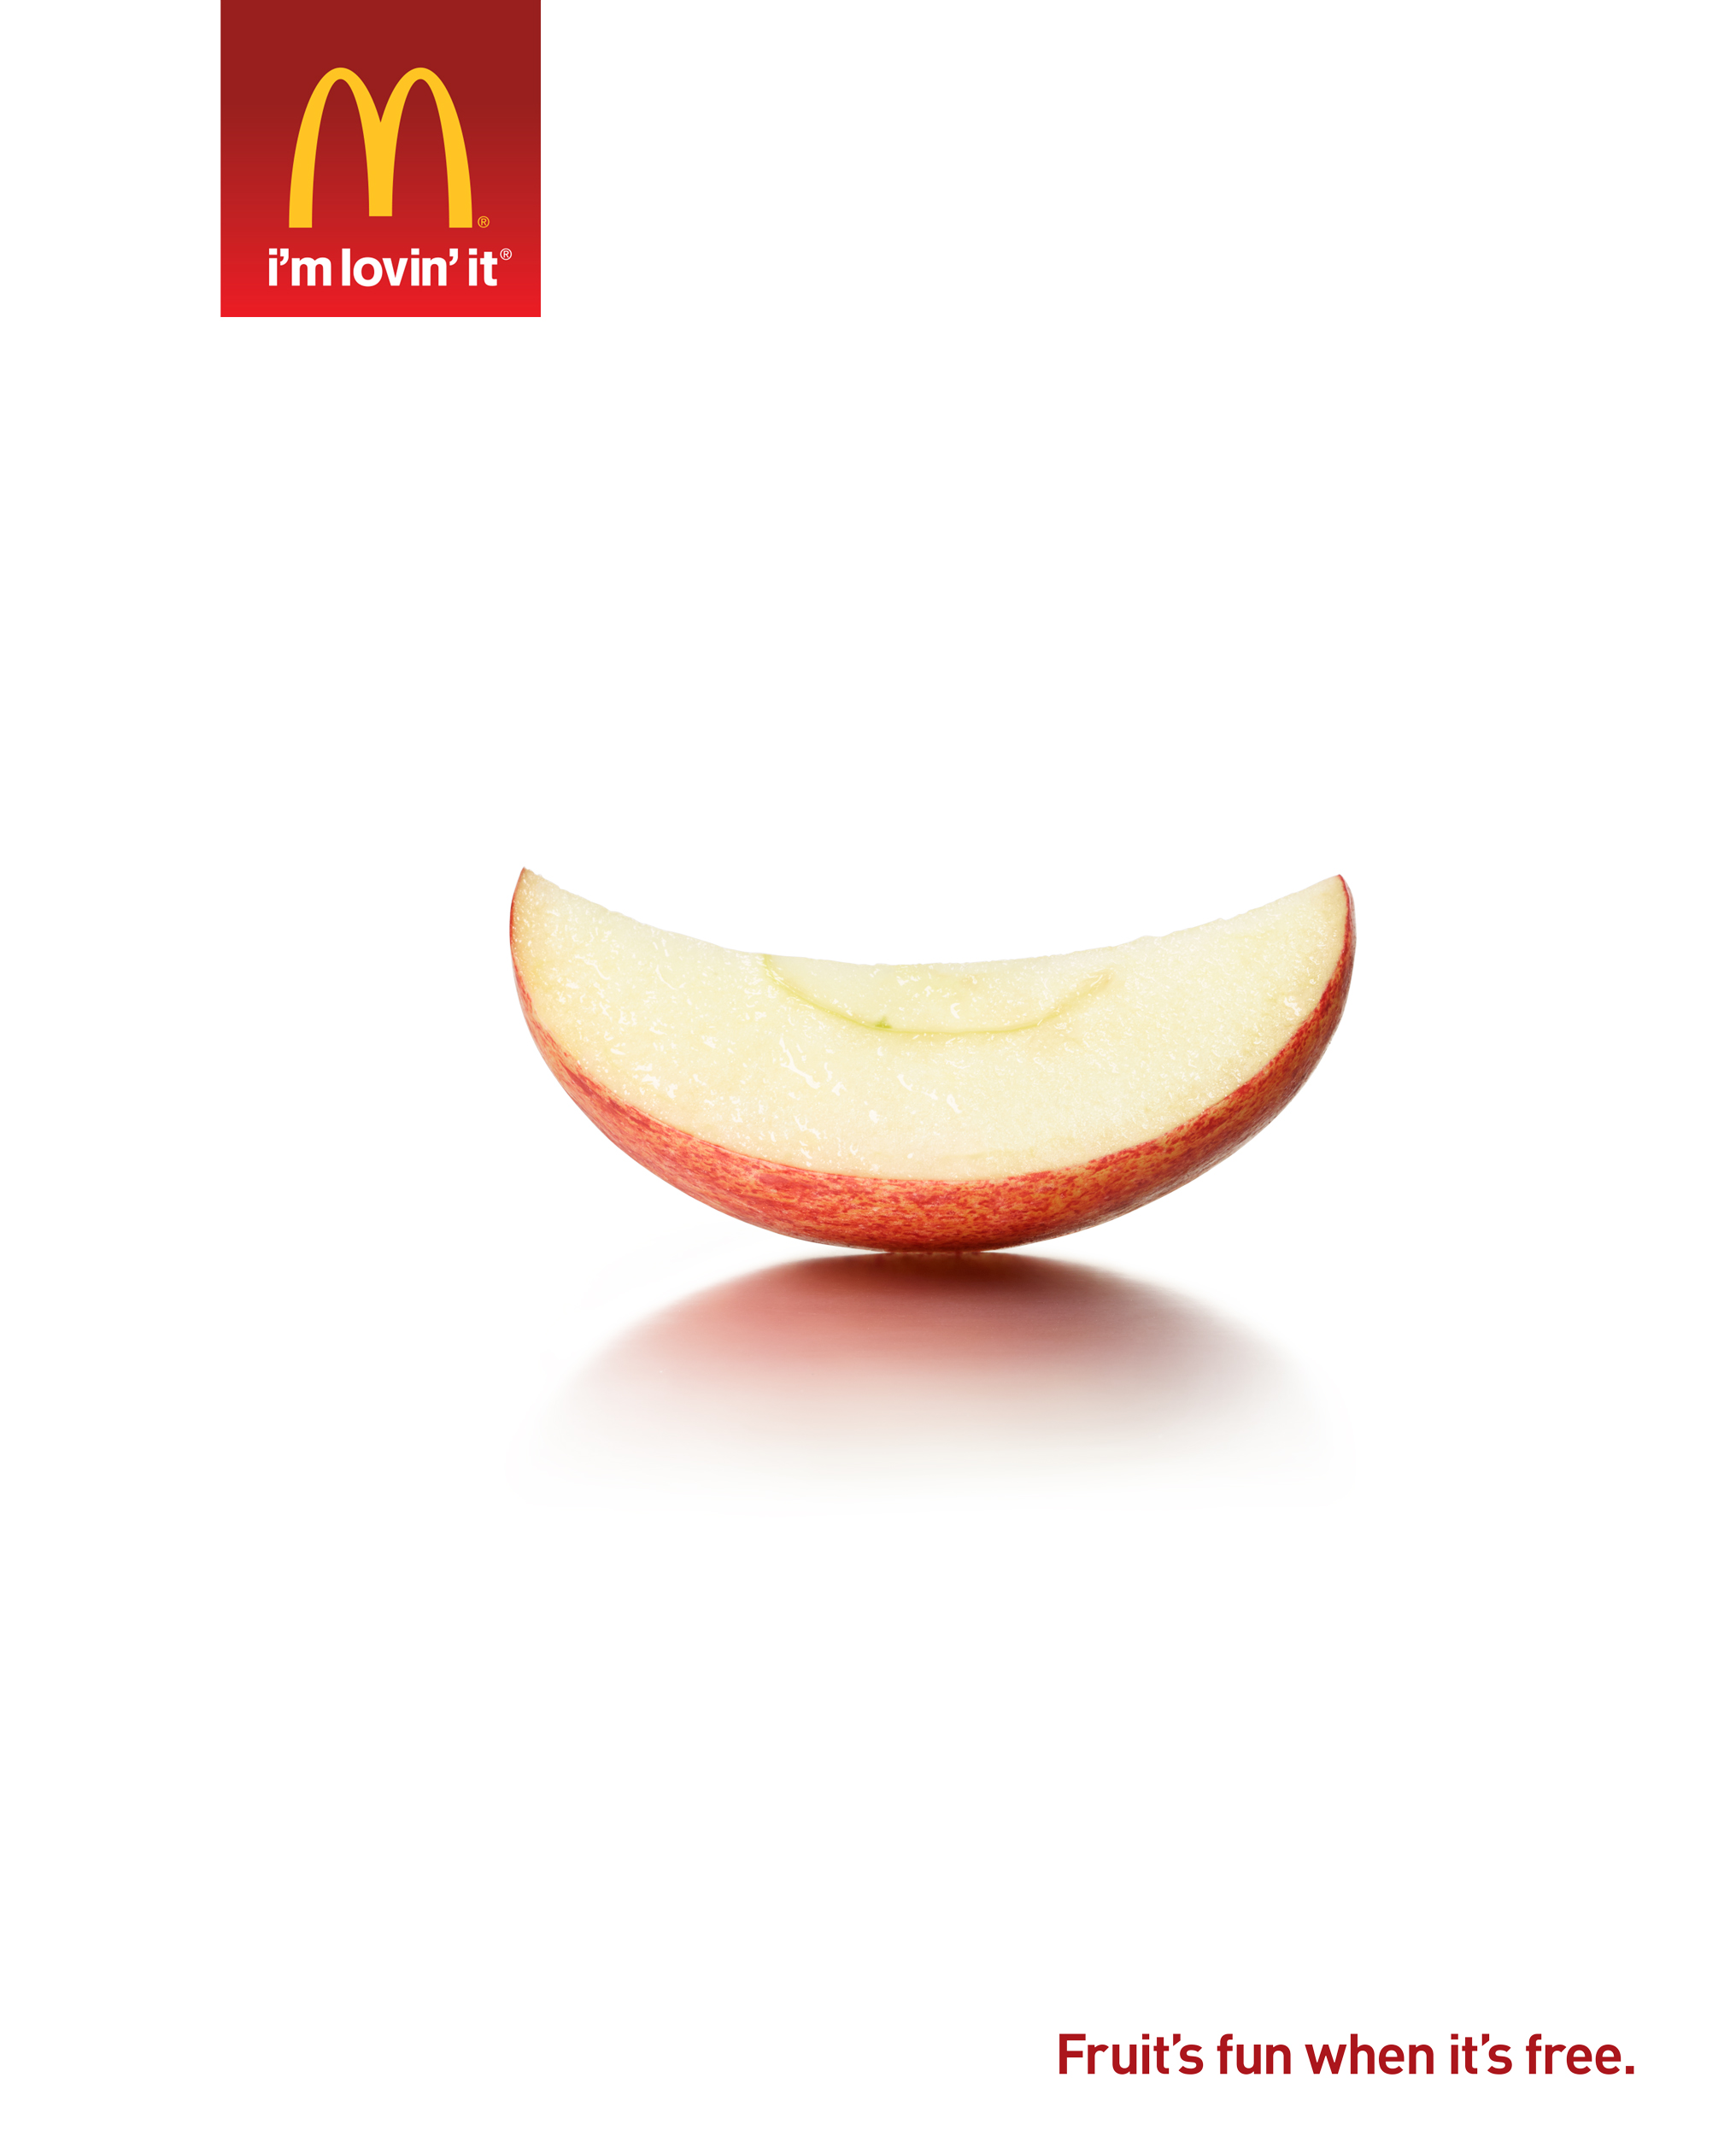 McDonalds Free Fruit Press copy.jpg